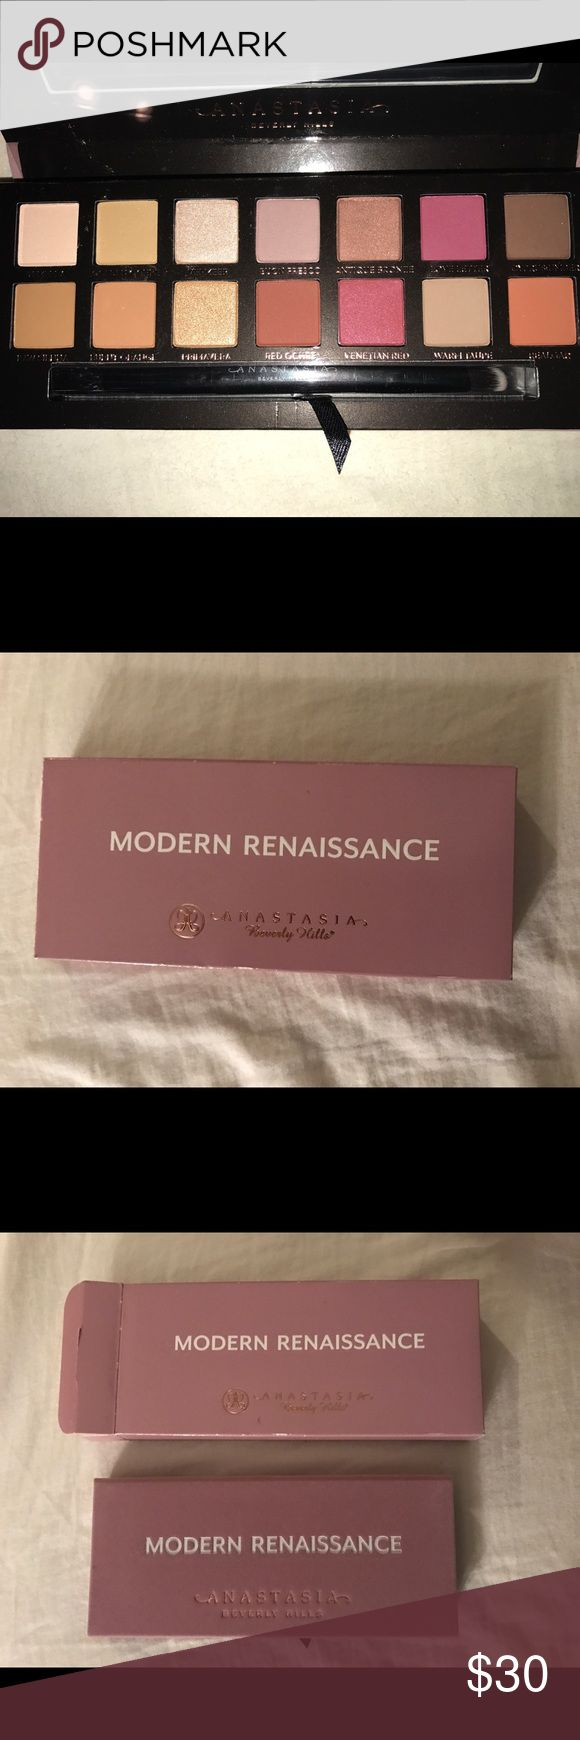 NEW Anastasia BH Modern Renaissance Palette Brand new, has never been touched/swatched, 100% authentic guaranteed Anastasia Beverly Hills Makeup Eyeshadow